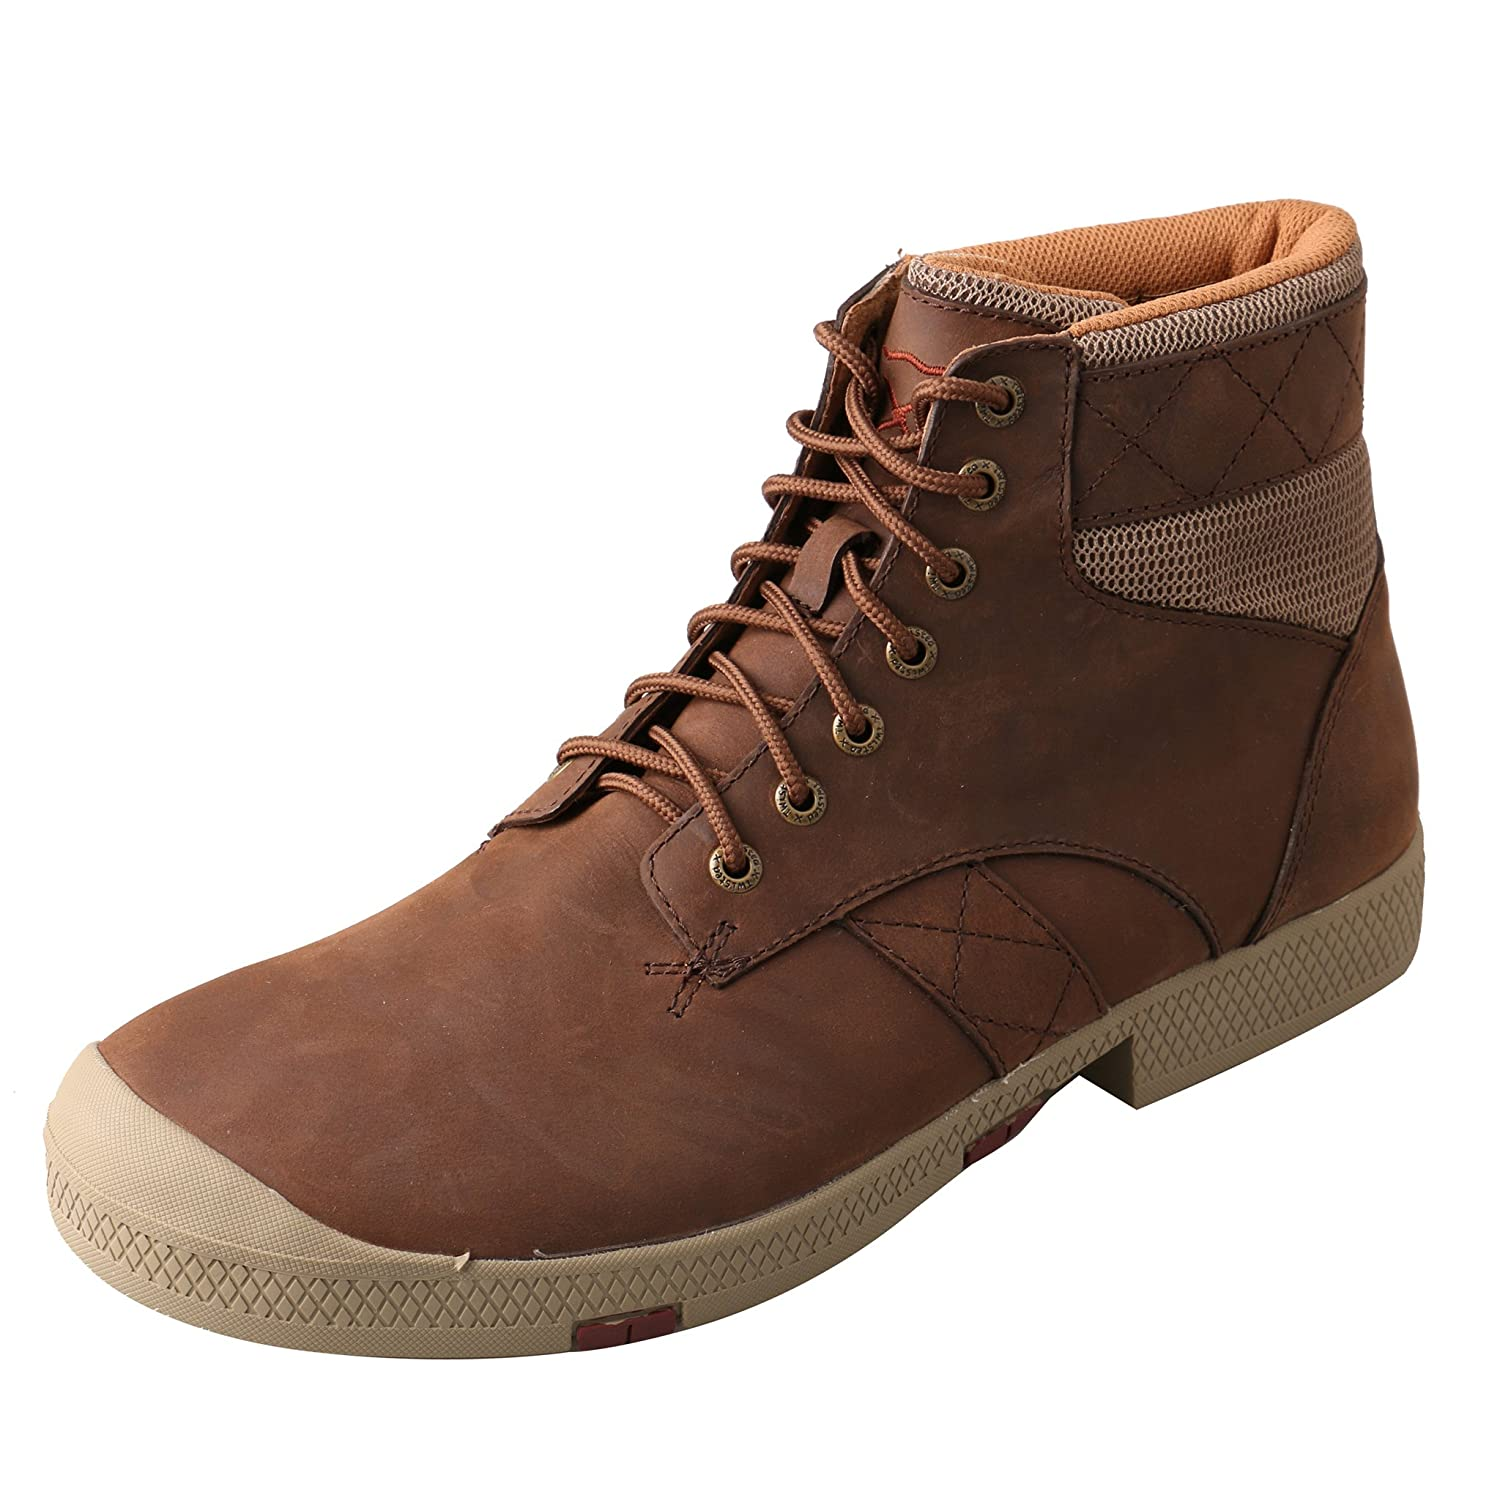 Amazon.com: Twisted X Mens Brown Leather Crazy Horse Casuals for Cowboys Boots 14M: Clothing